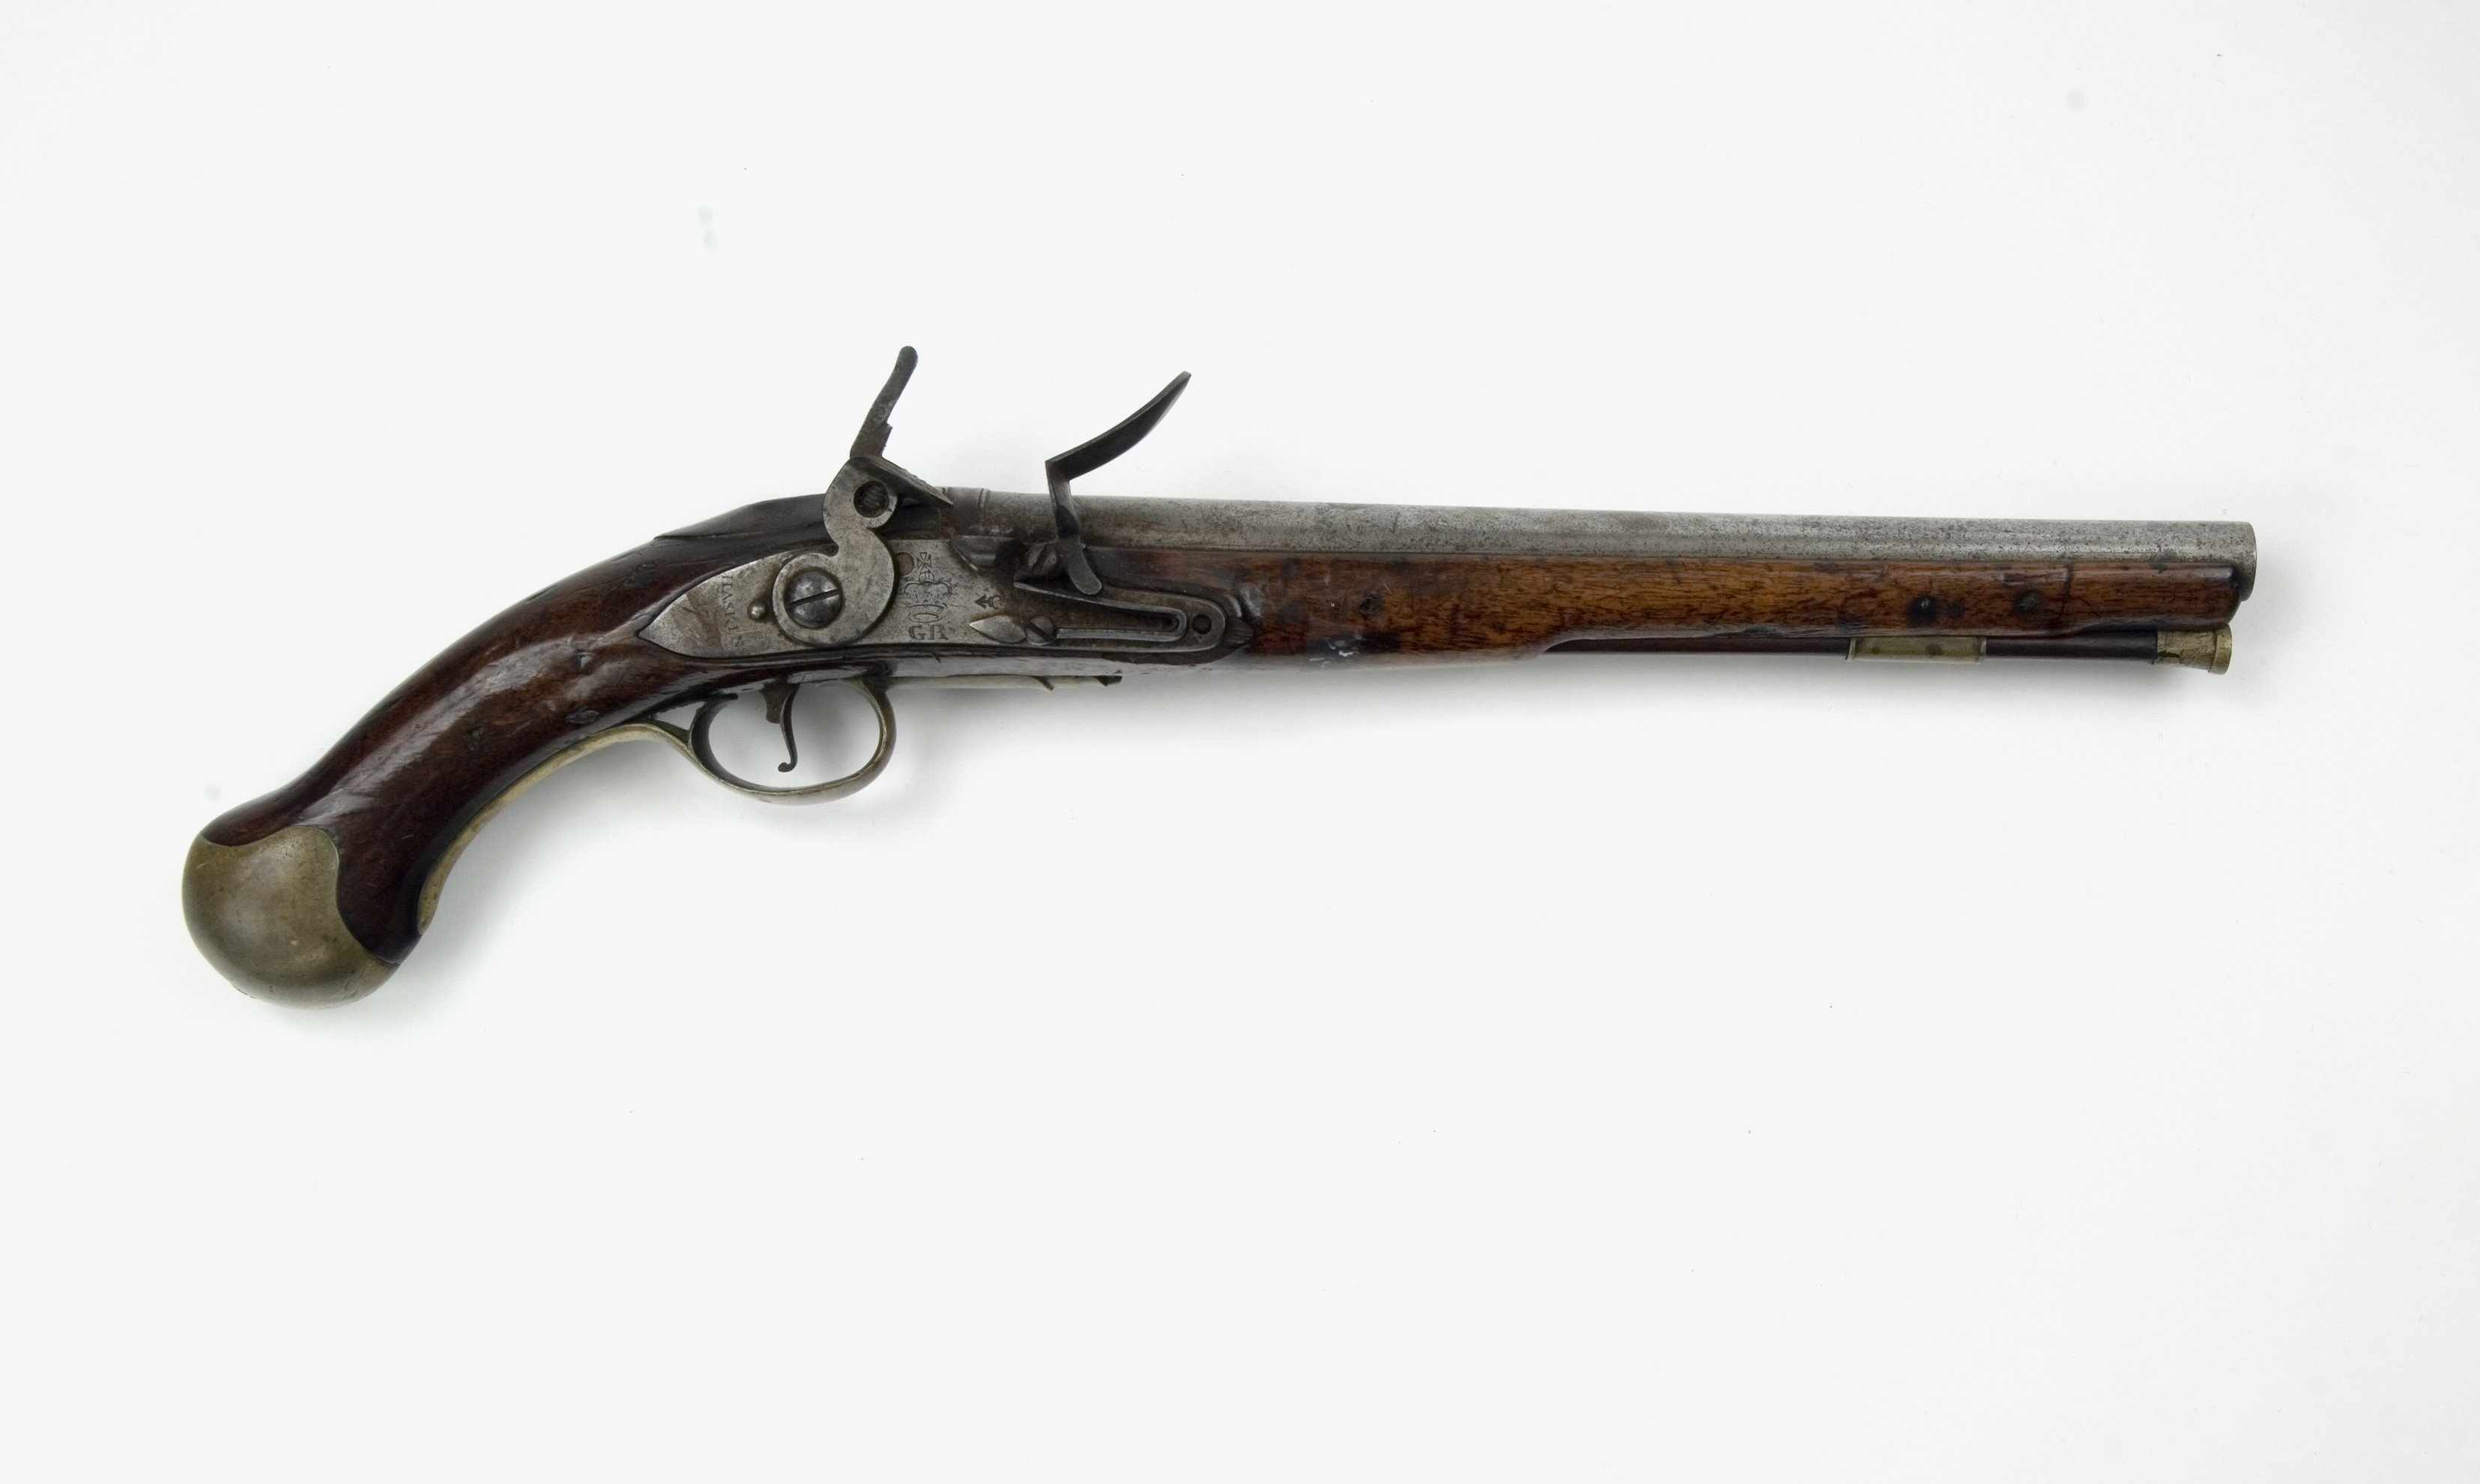 Artemas Ward British Pattern 1738 sea service pistol